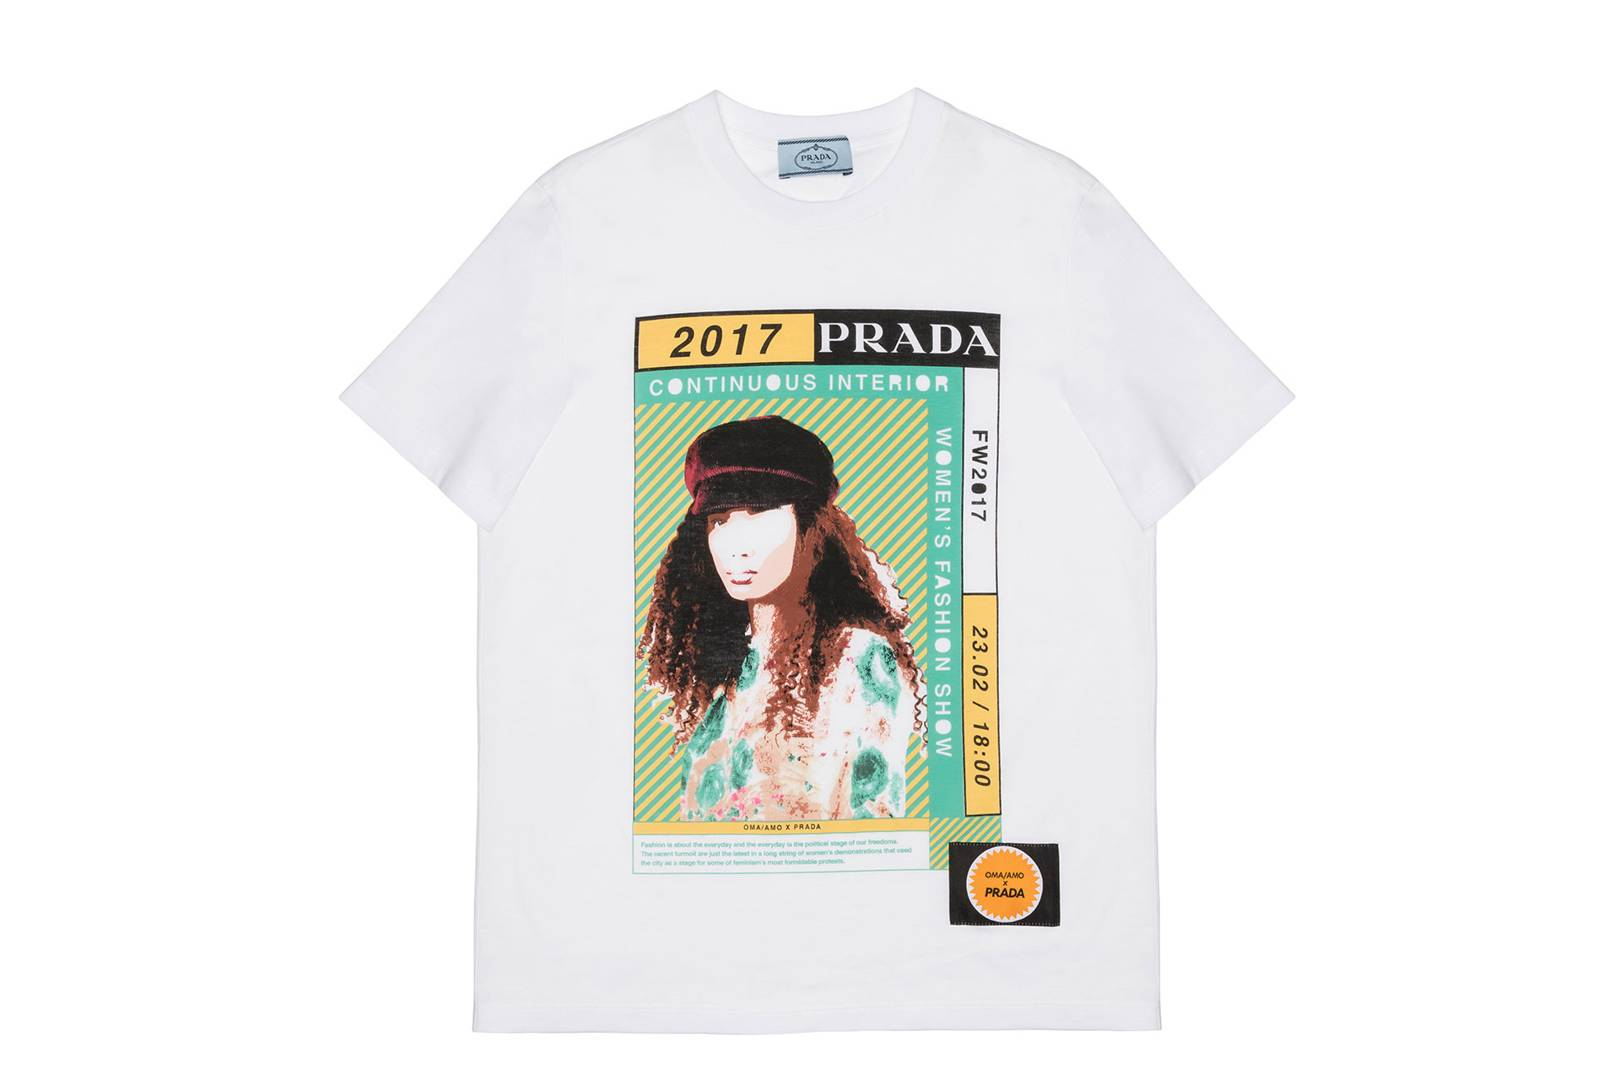 4e88602cd Vogue's Favourite T-Shirts: Prada's 2017 Capsule Collection | British Vogue